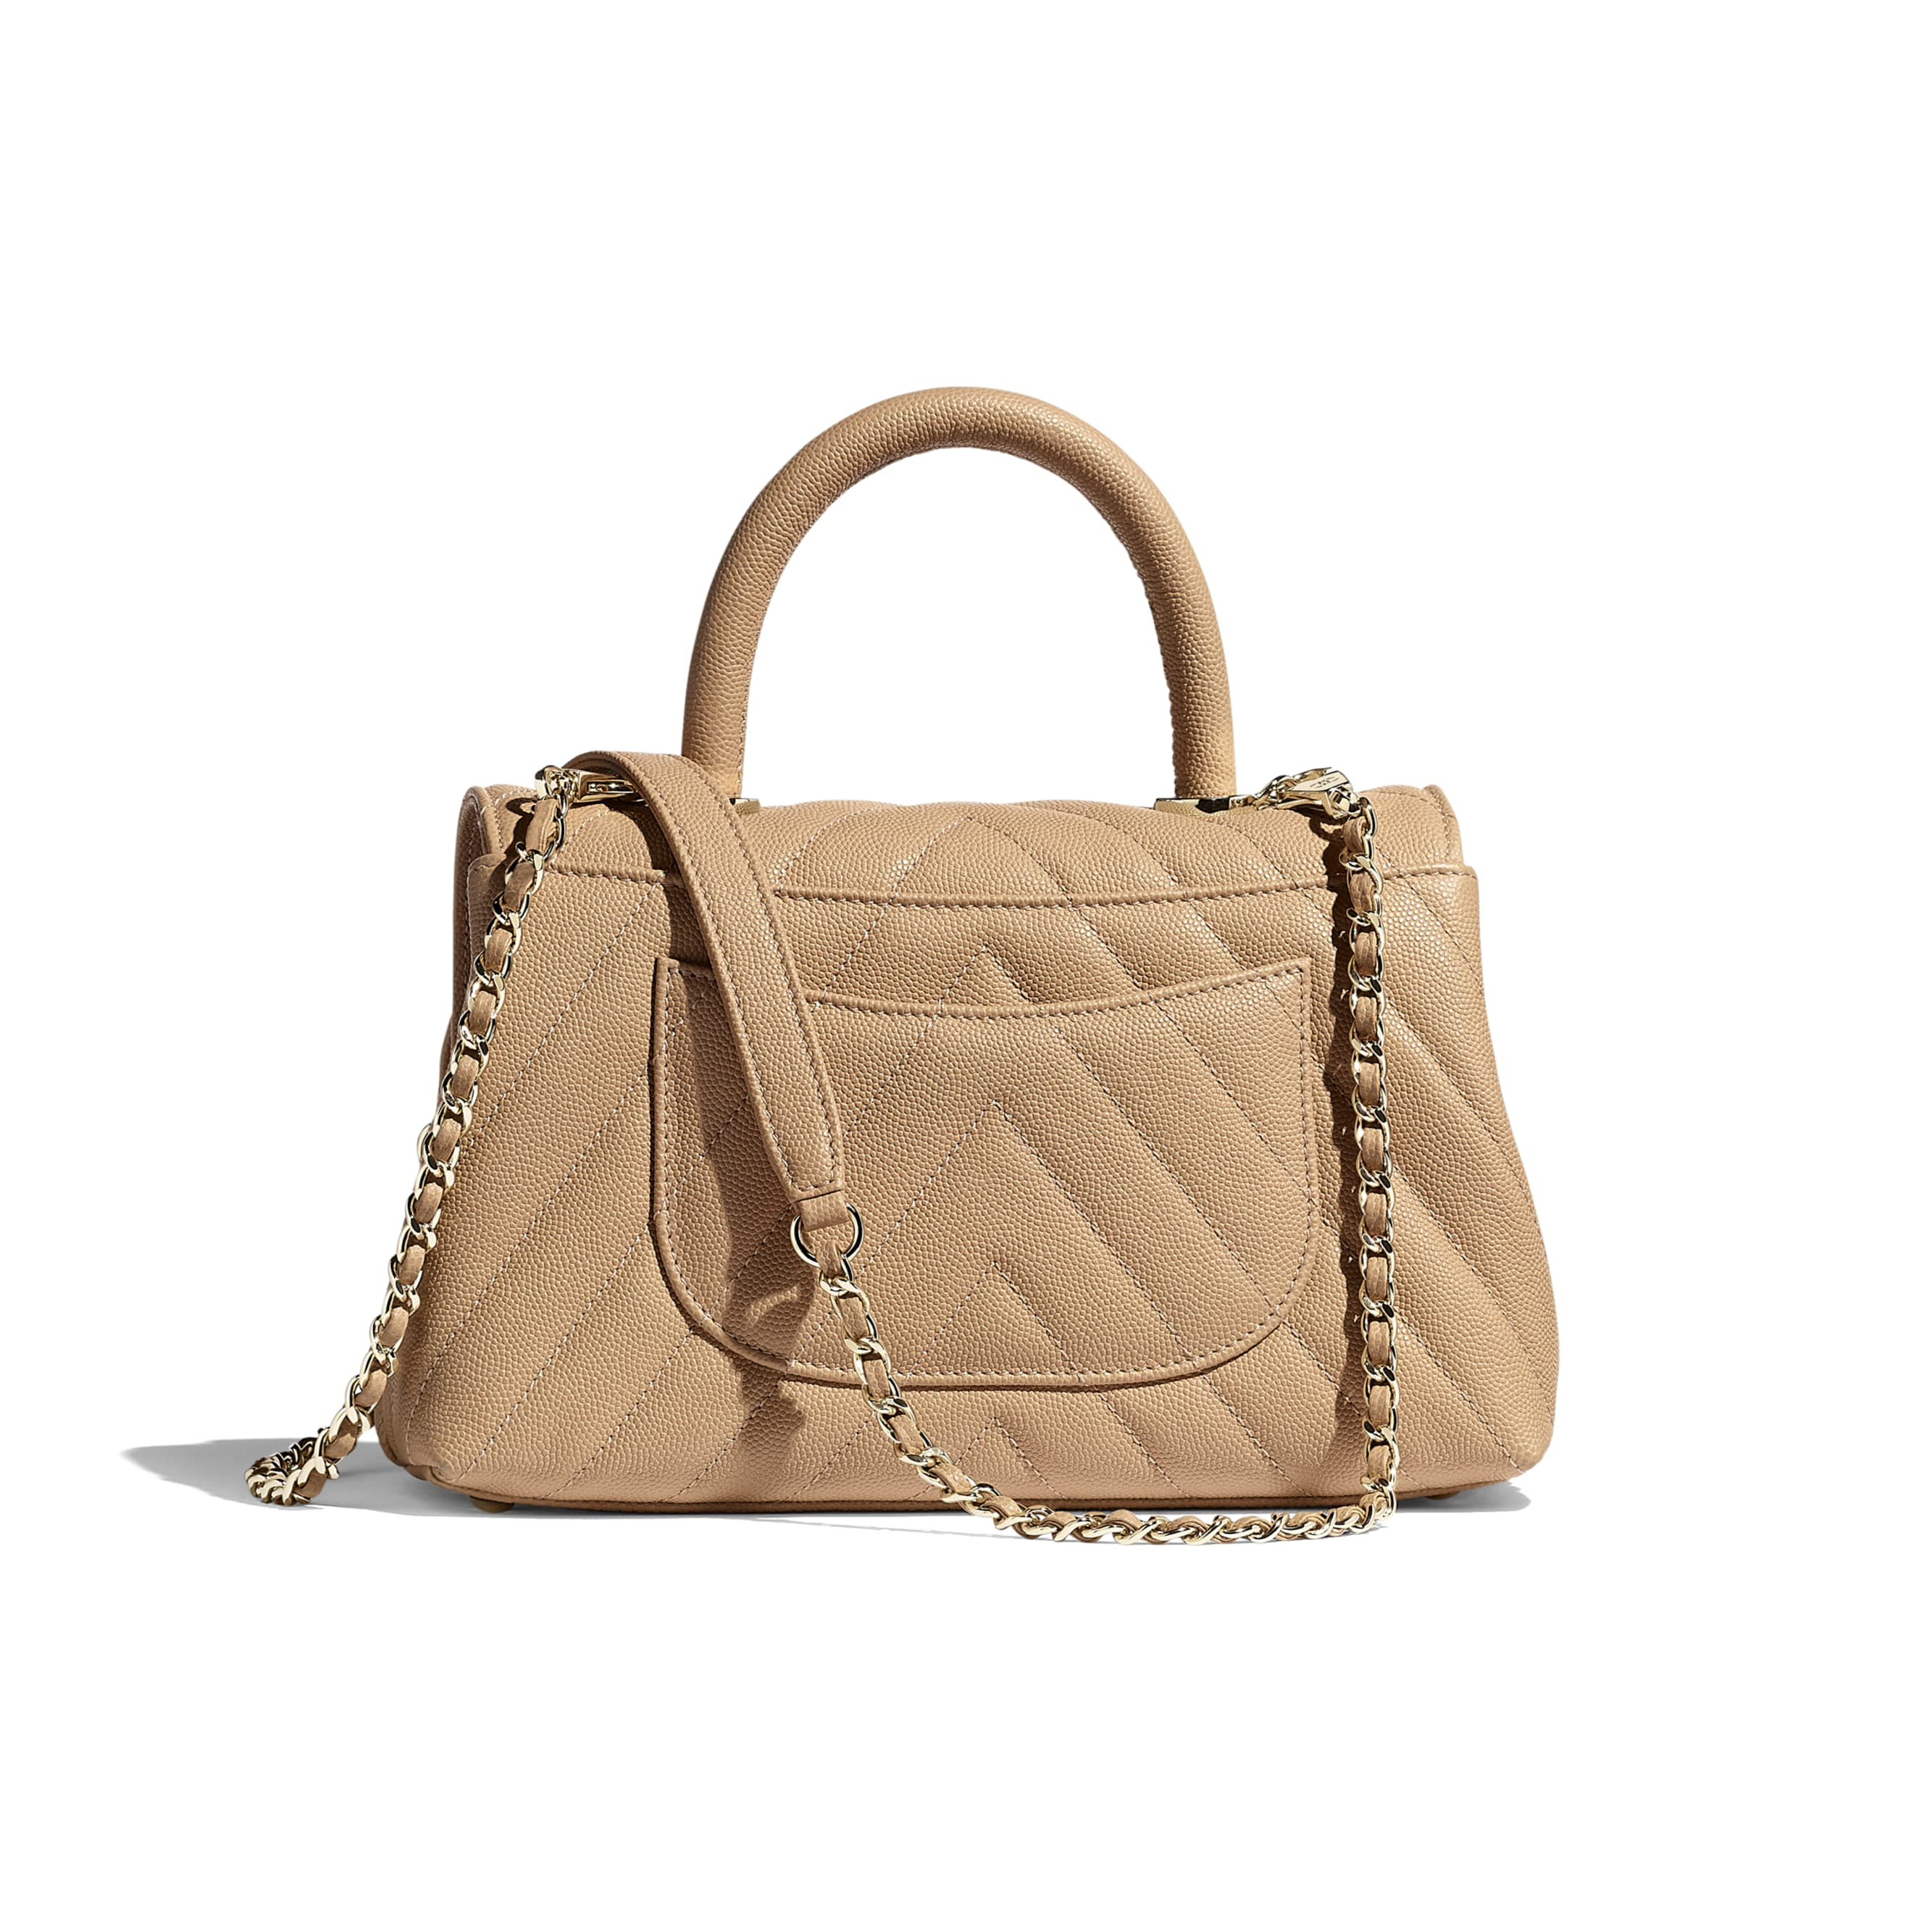 Small Flap Bag With Top Handle - Beige - Grained Calfskin & Gold-Tone Metal - Alternative view - see standard sized version